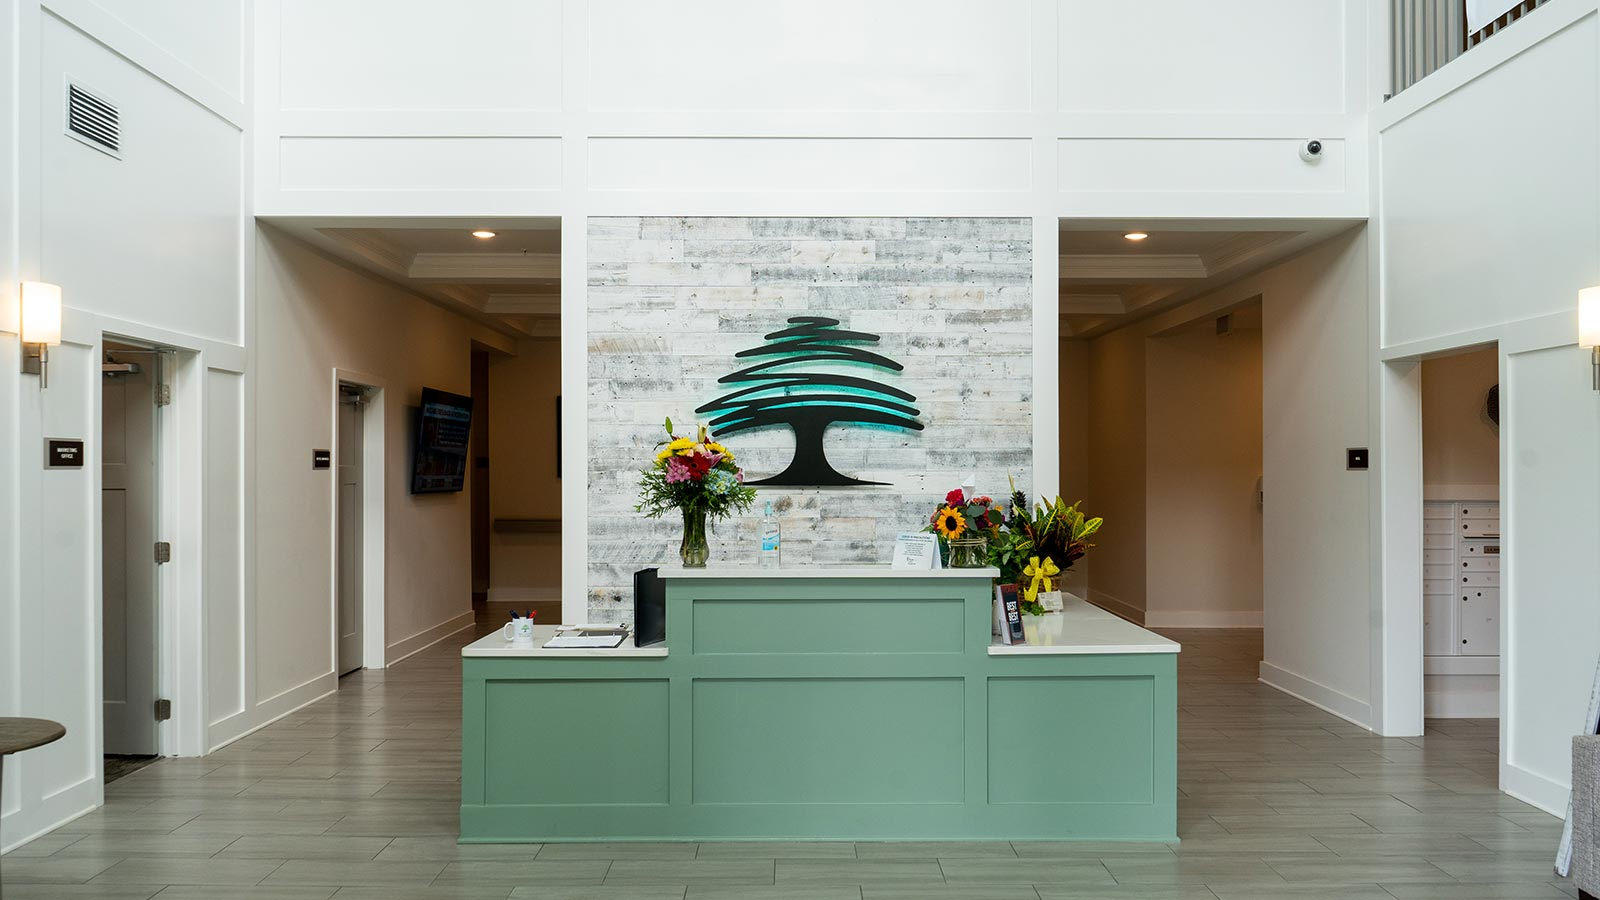 View of the main lobby front desk at The Canopy at Azalea Grove assisted living and memory care community in Valdosta, GA